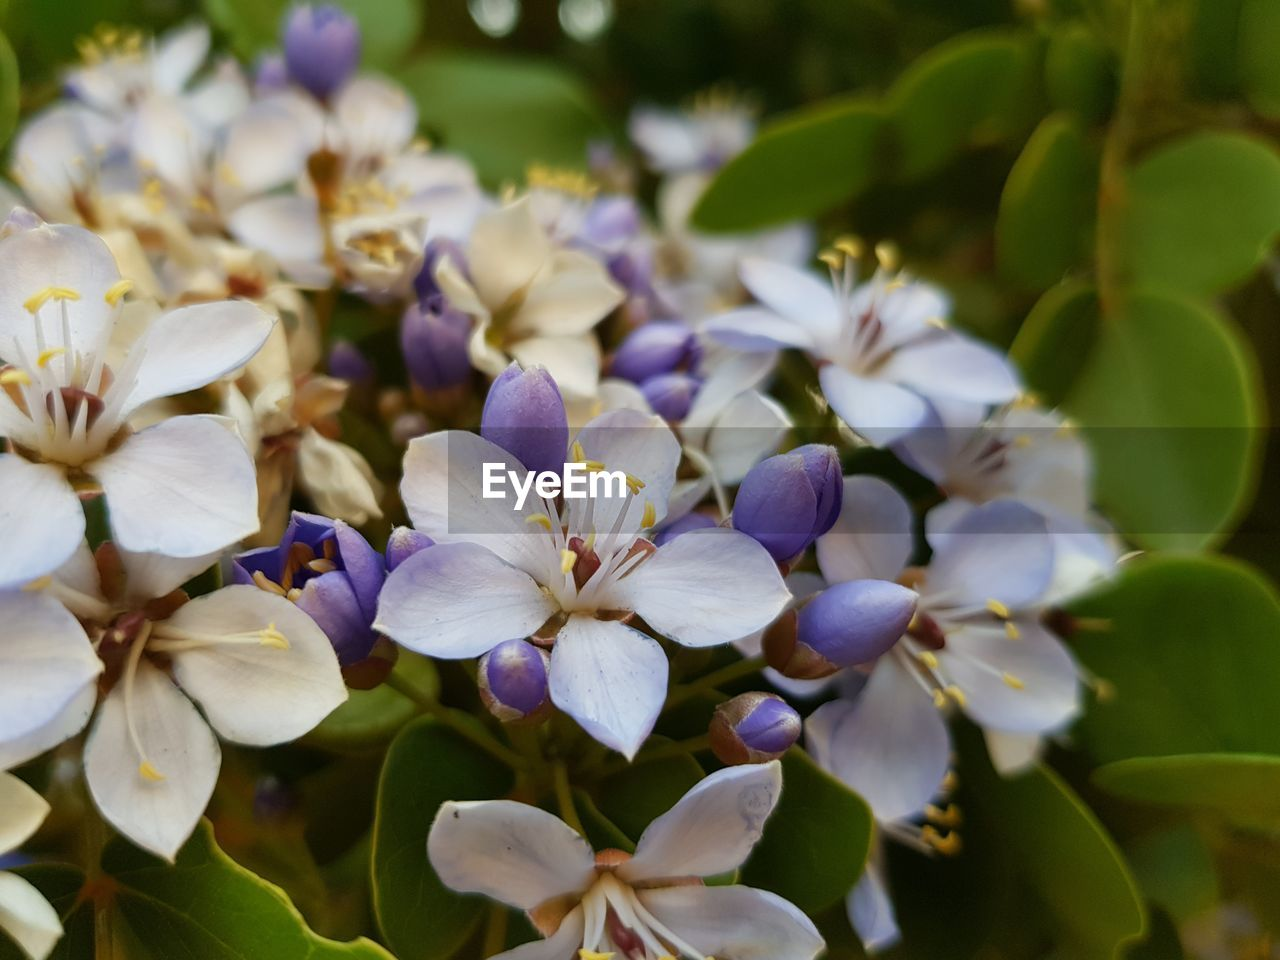 flower, beauty in nature, petal, fragility, nature, growth, freshness, plant, purple, flower head, no people, day, outdoors, blooming, close-up, periwinkle